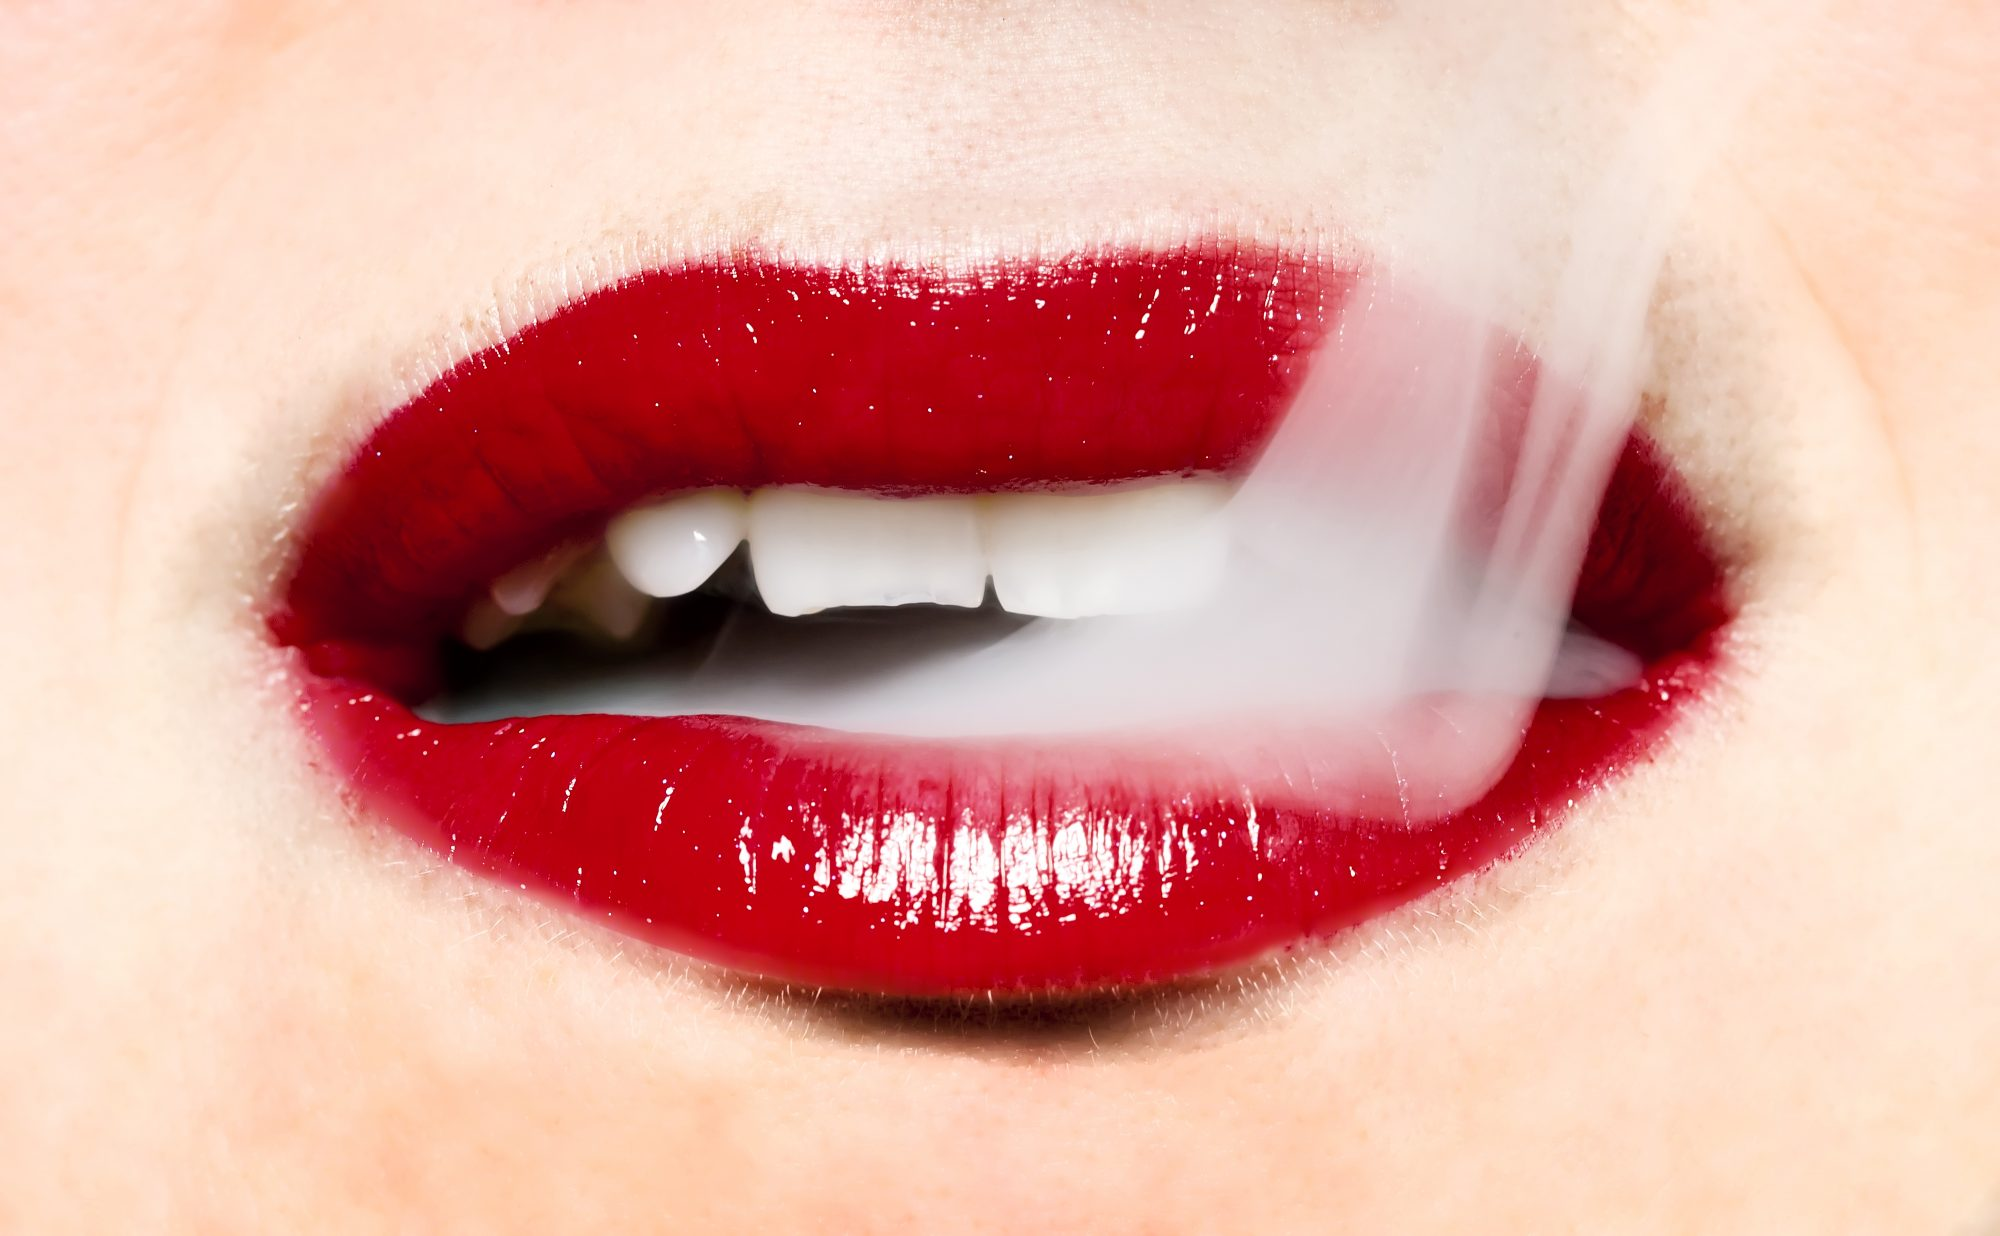 vaping-teeth vaping-mouth woman health smoking vapor vape